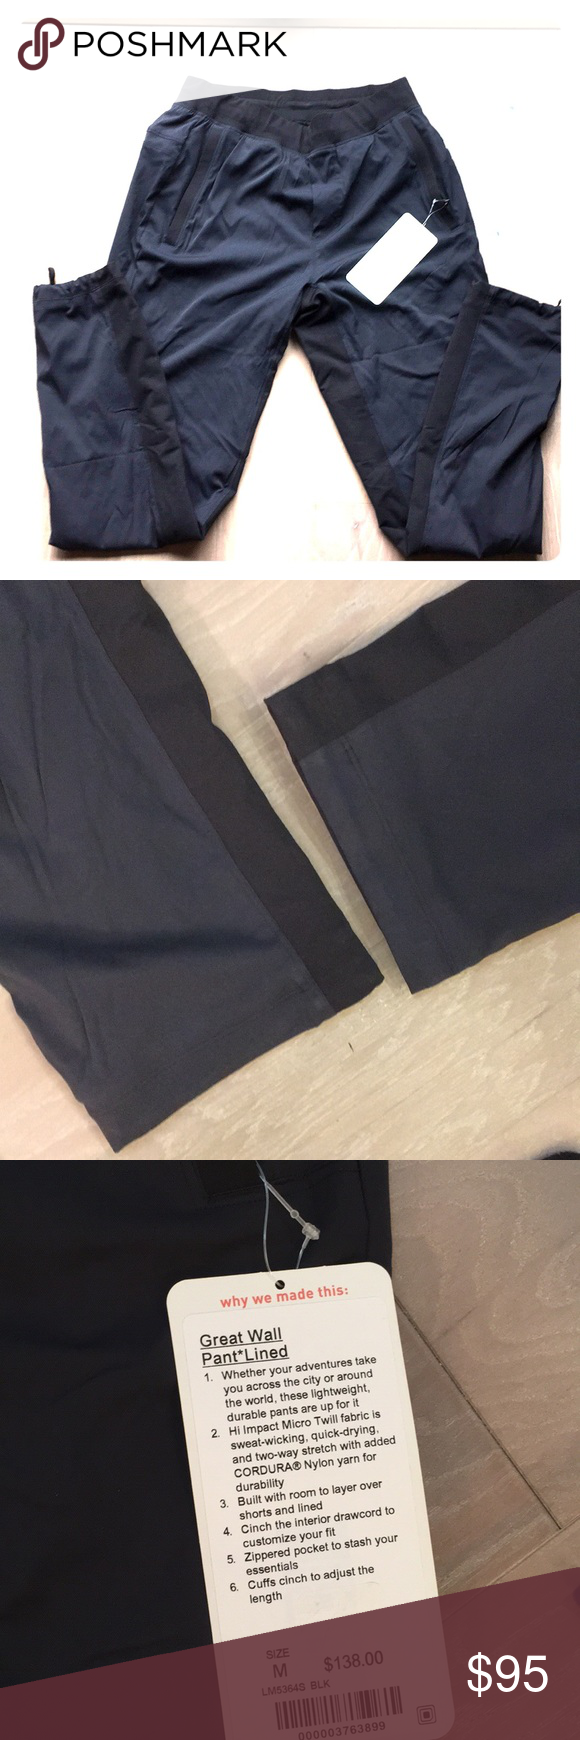 """a8580ce4b964bc Men's Lululemon lined """"Great Wall"""" Pant - size M Men's Lululemon lined """"Great  Wall"""" Pant - size Medium. Brand new with tags, never worn."""